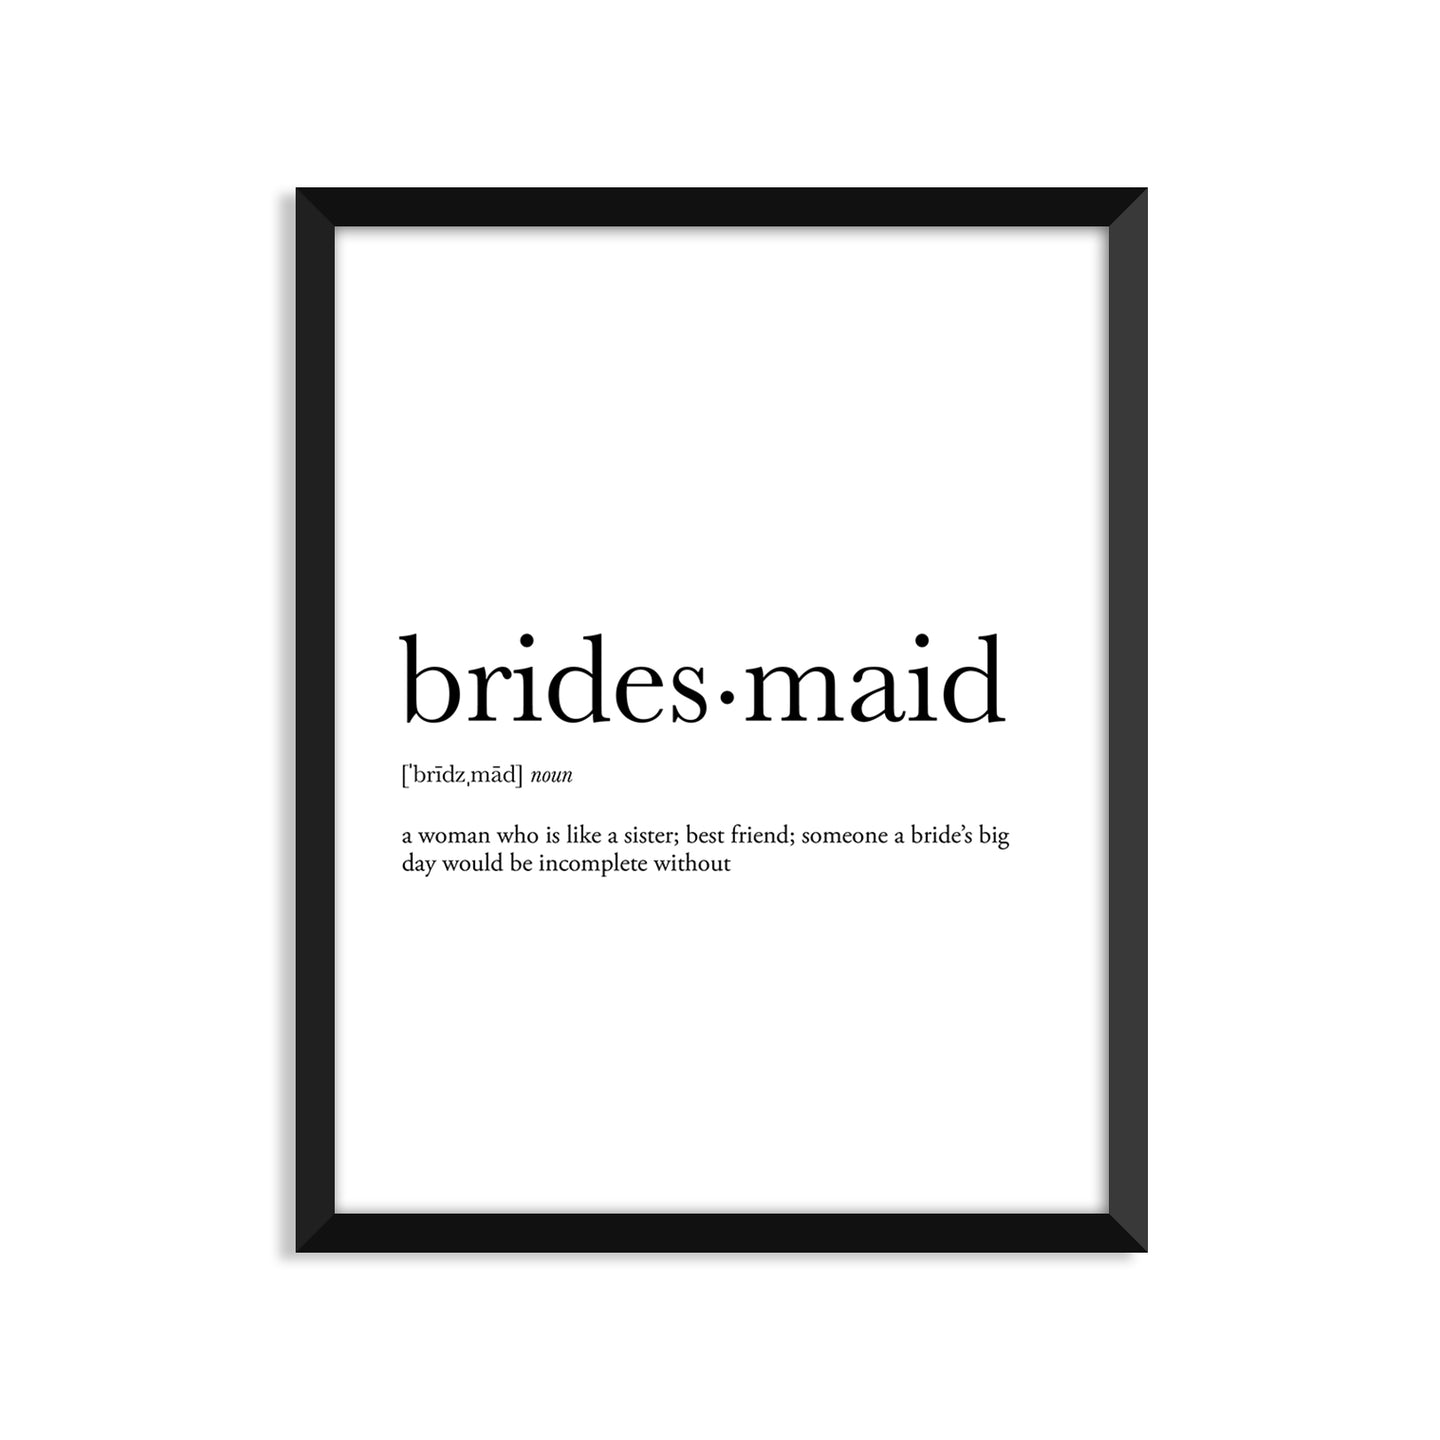 Bridesmaid Definition - Unframed Art Print Or Greeting Card